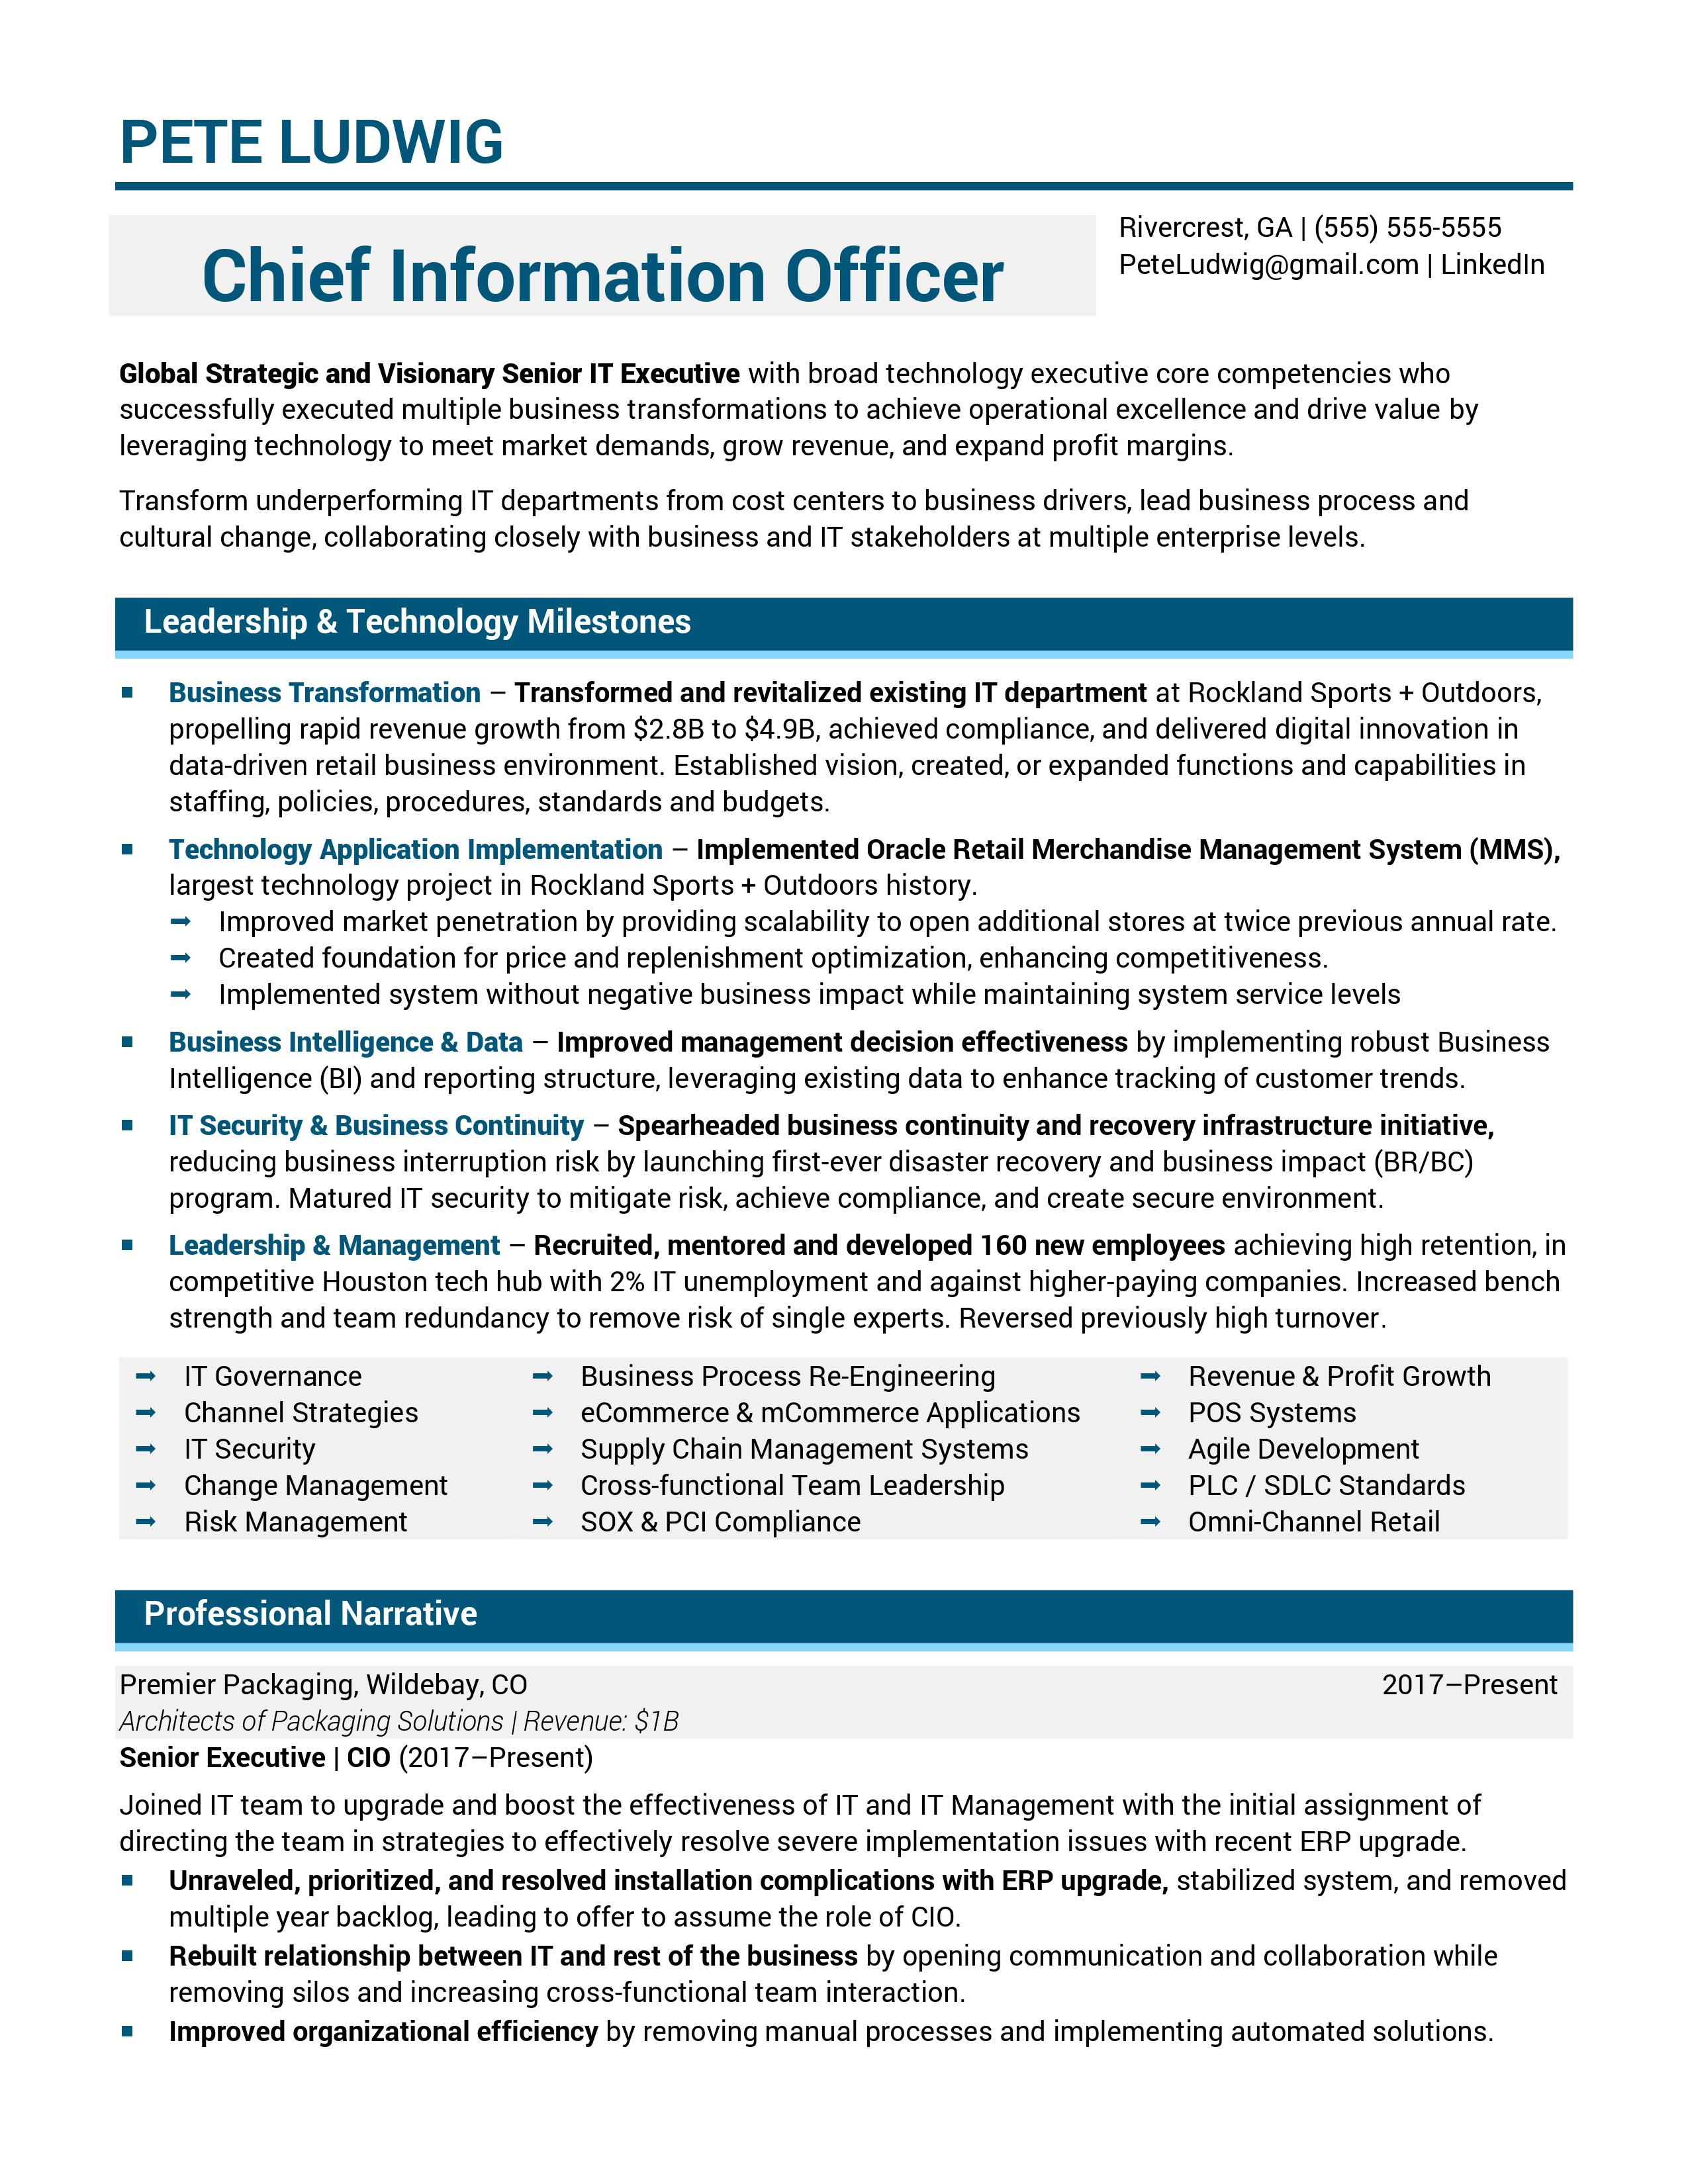 Chief-Information-Officer-Resume-Sample-1-1 Vice President Of Information Technology Resume on information technology professional resume, vp information technology resume, director of information technology resume,